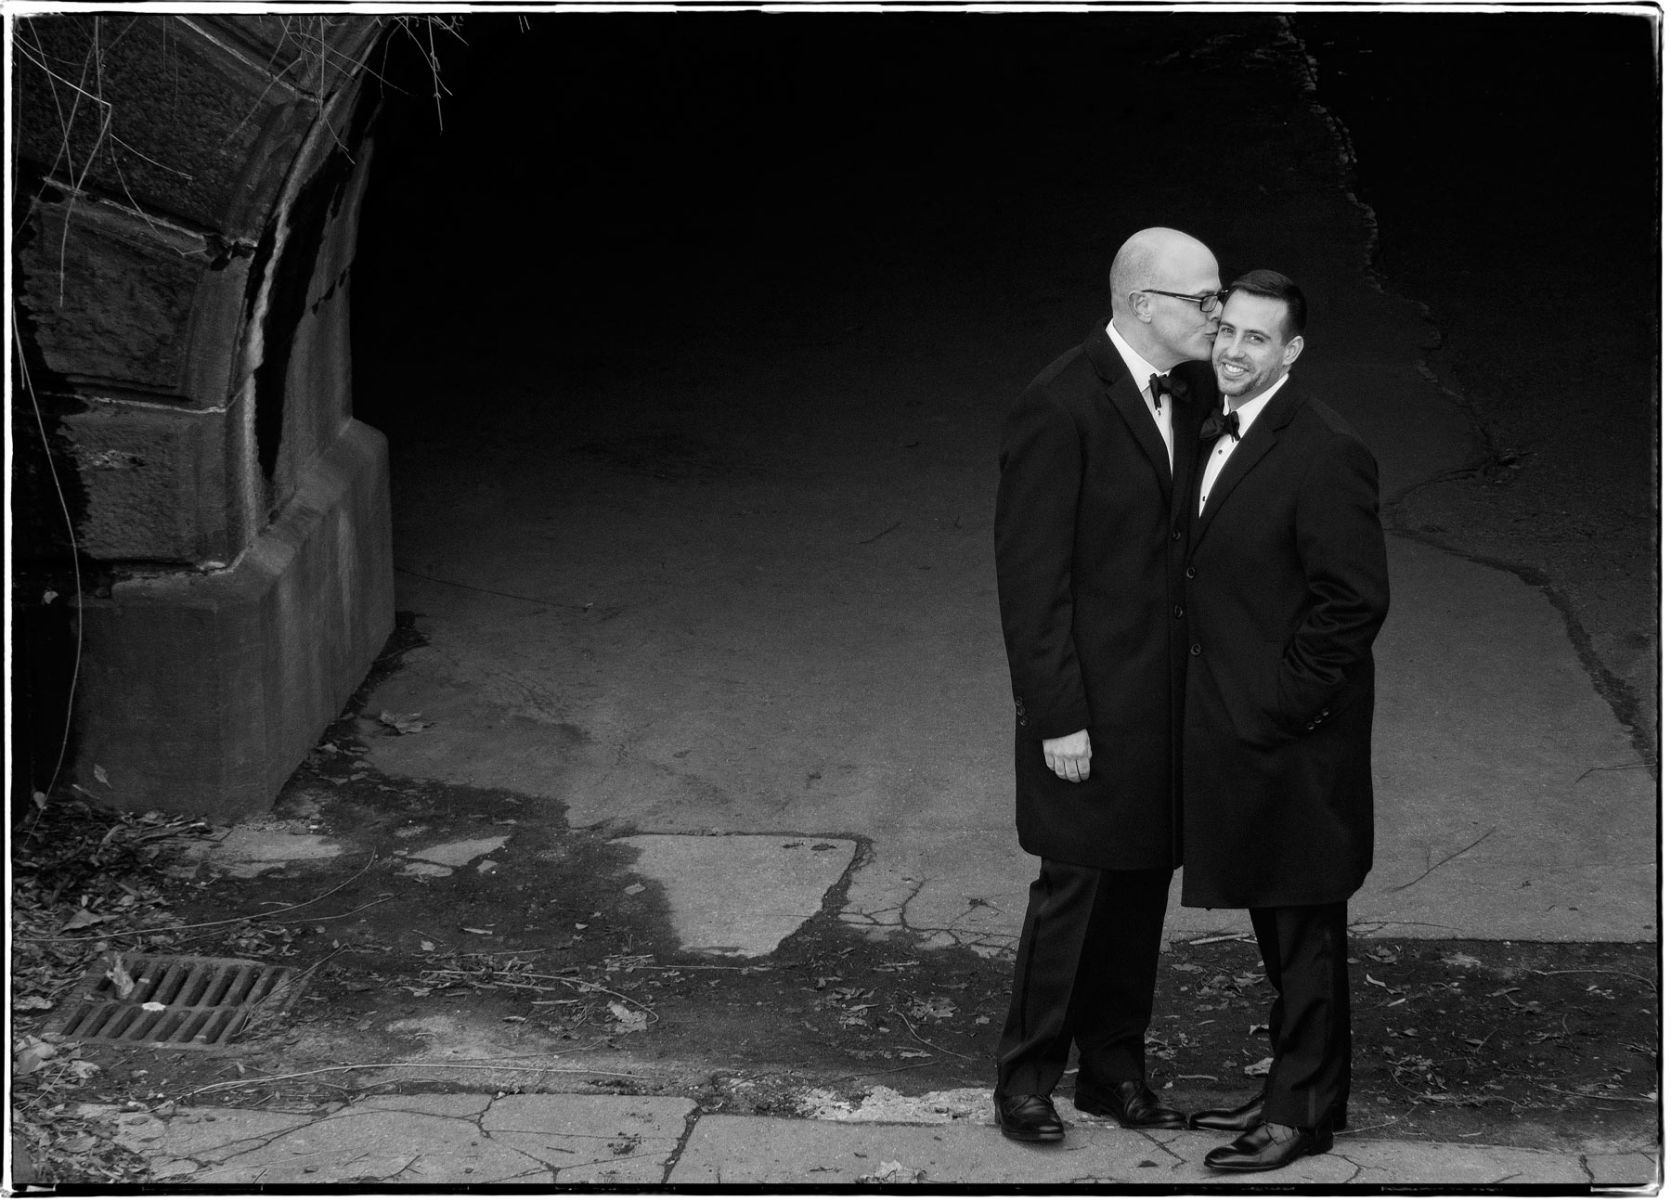 Grooms Special Moment In B&W